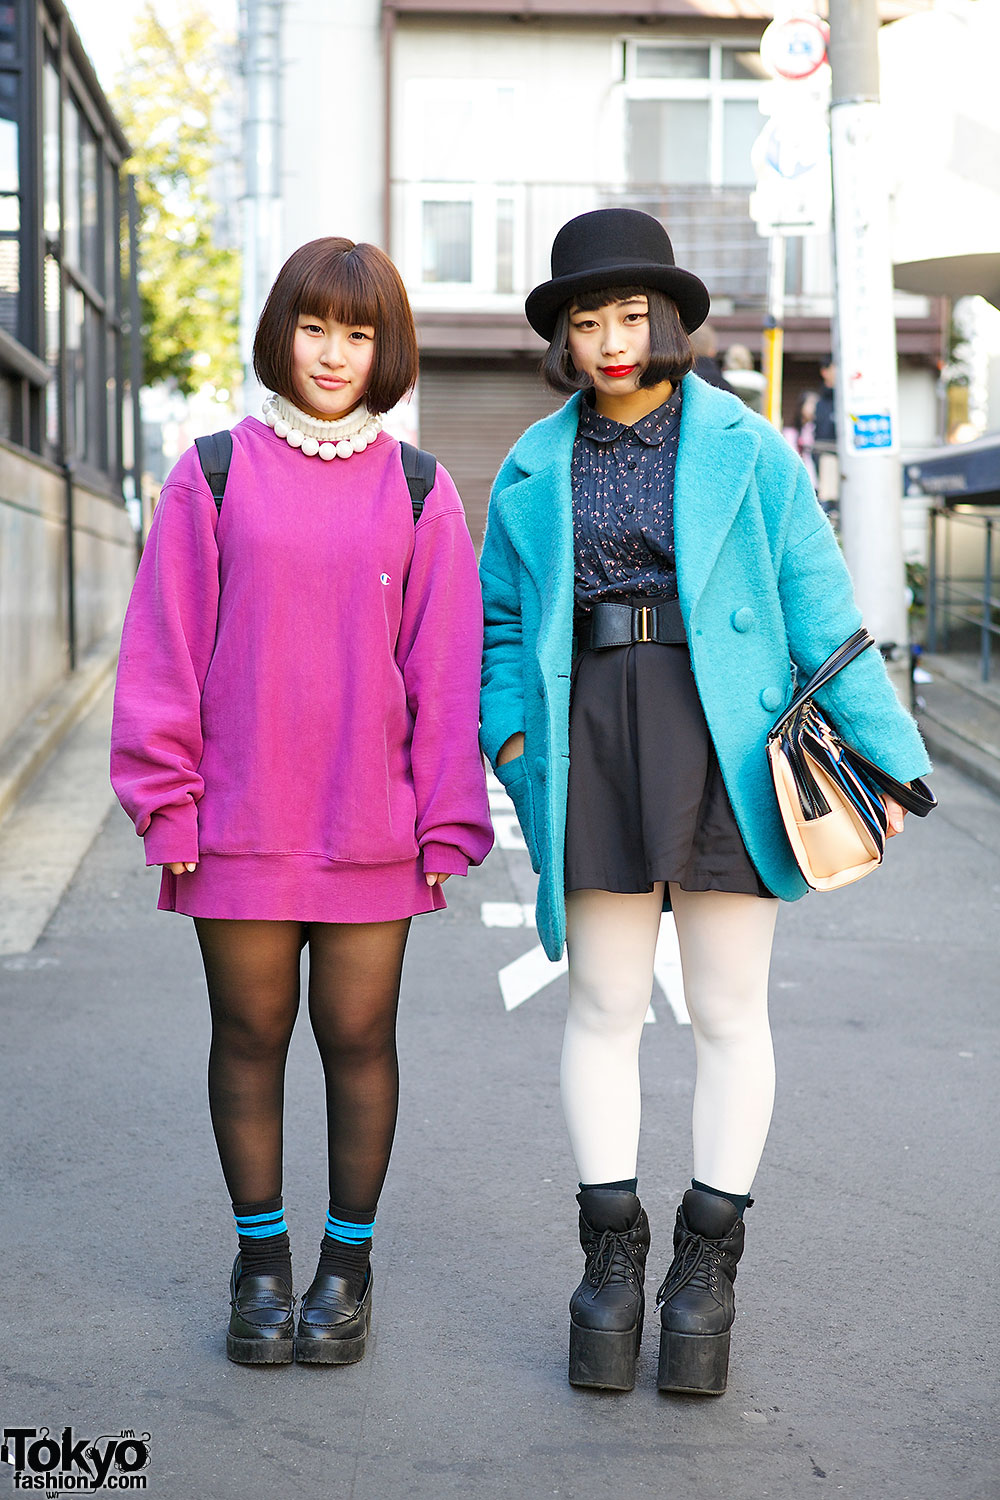 Harajuku Girls in Bright Outerwear